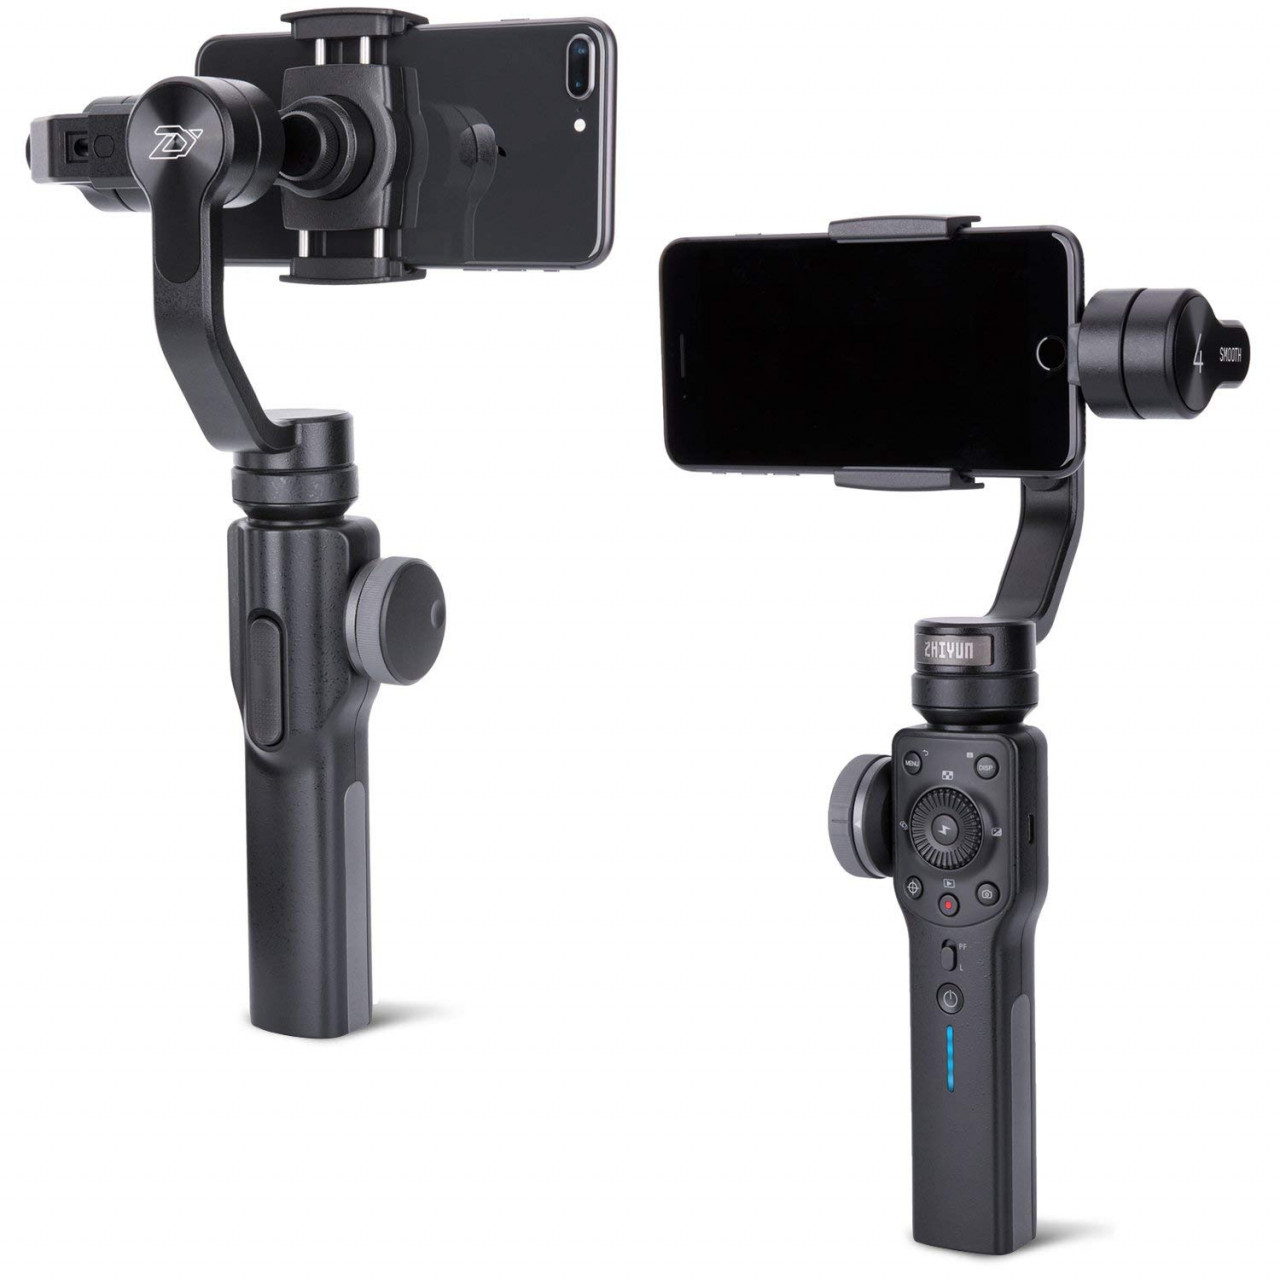 Zhiyun Official Smooth 4 3-Axis Handheld Gimbal Stabilizer for Smartphone